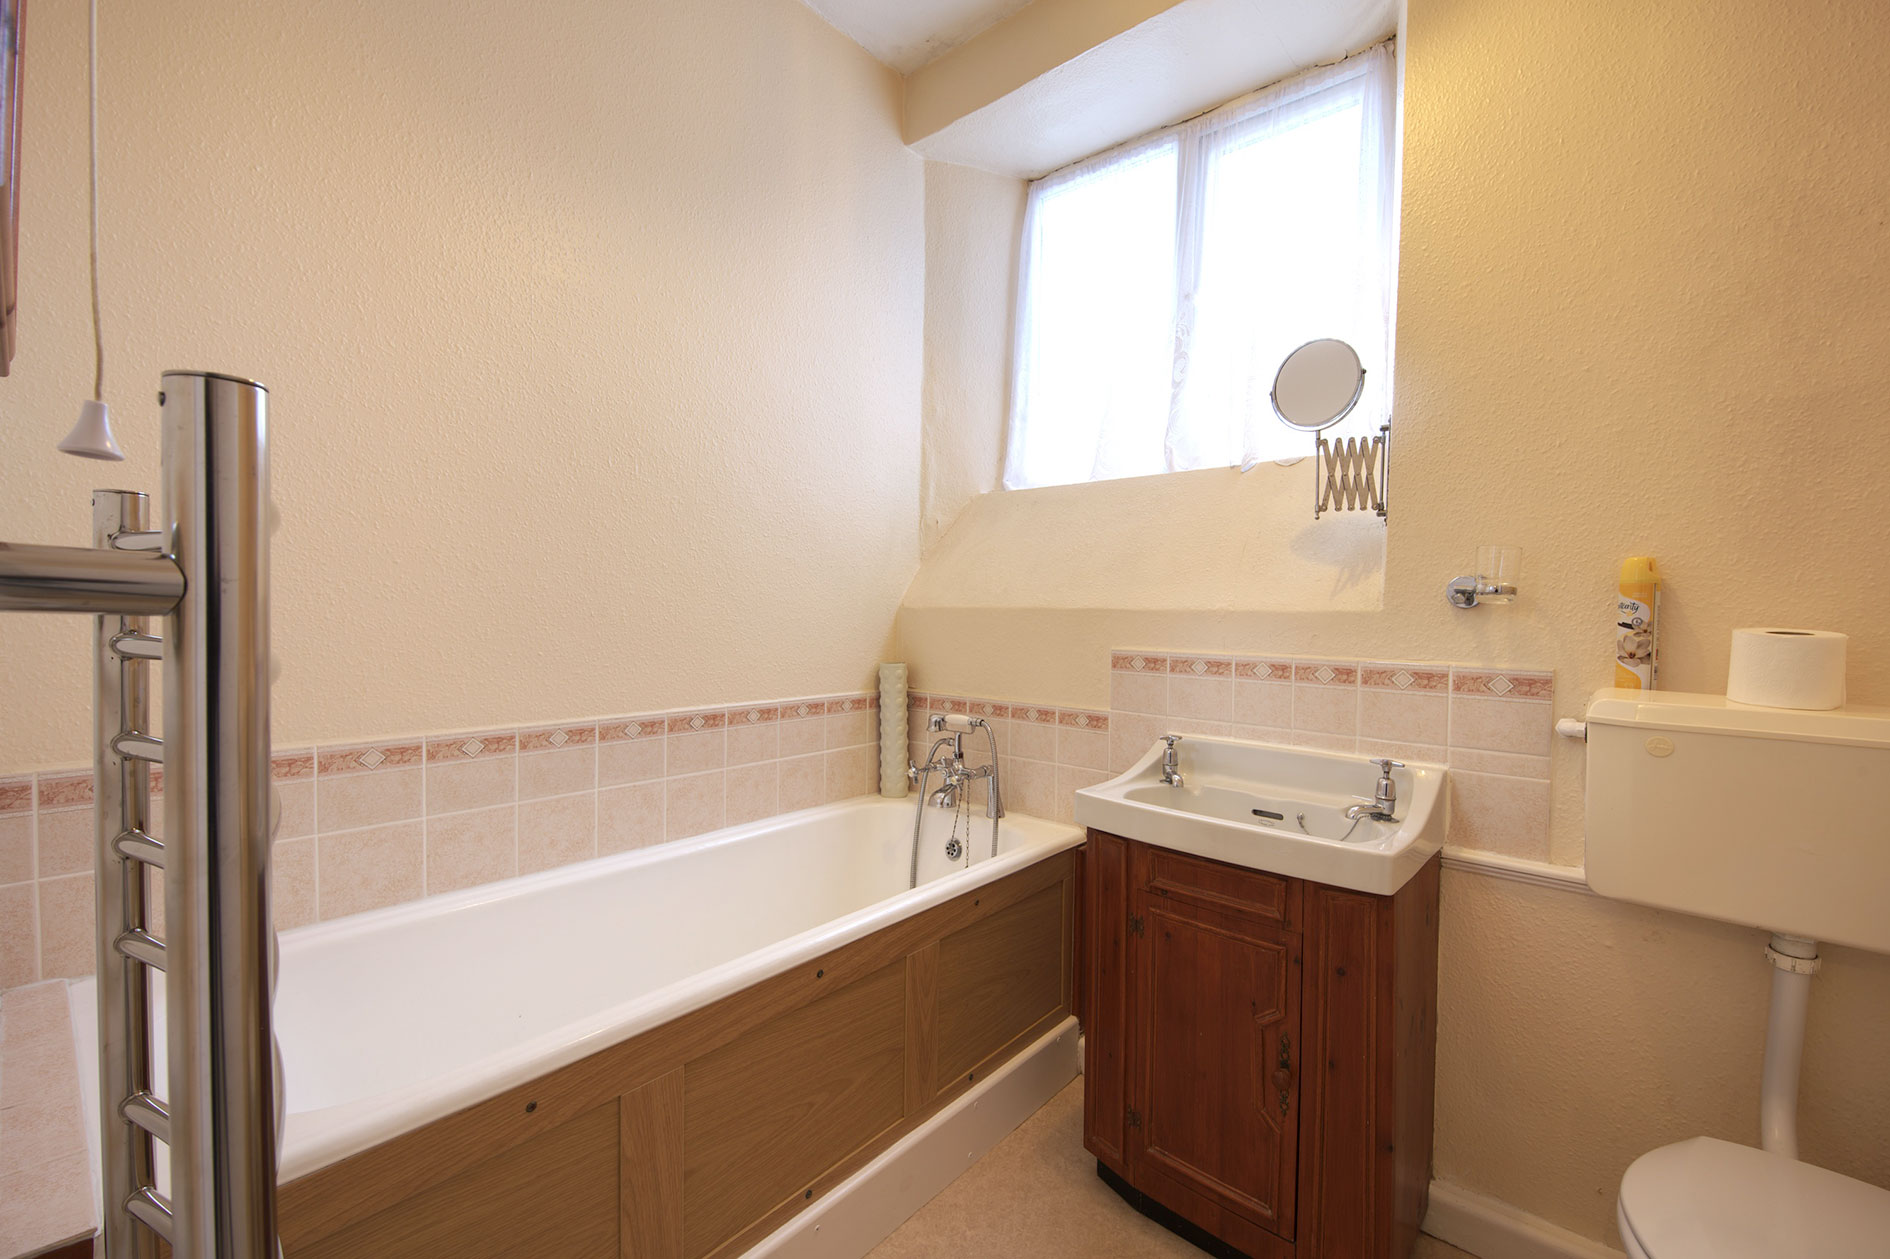 Light Bathroom With Wood Panelled Bath, Sink And Toilet